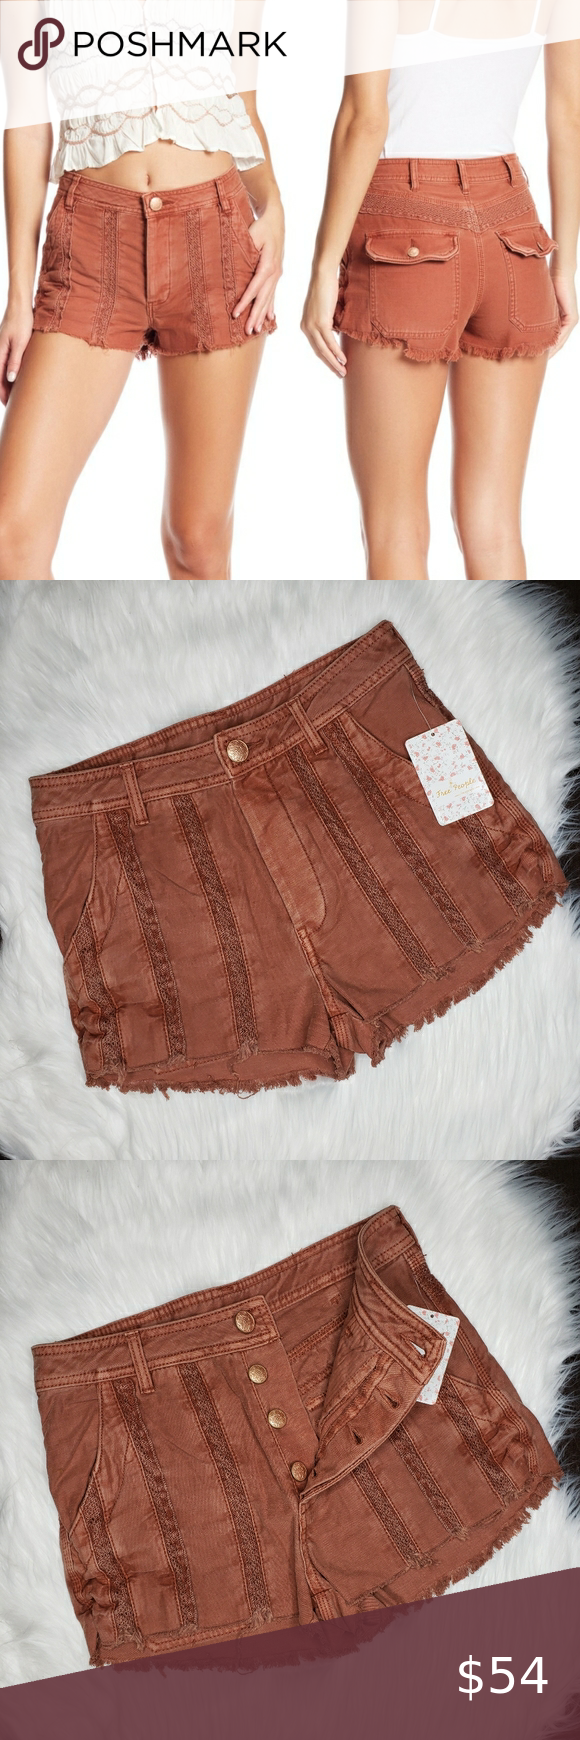 Free People Great Expectations Lace Cutout Shorts in 2020